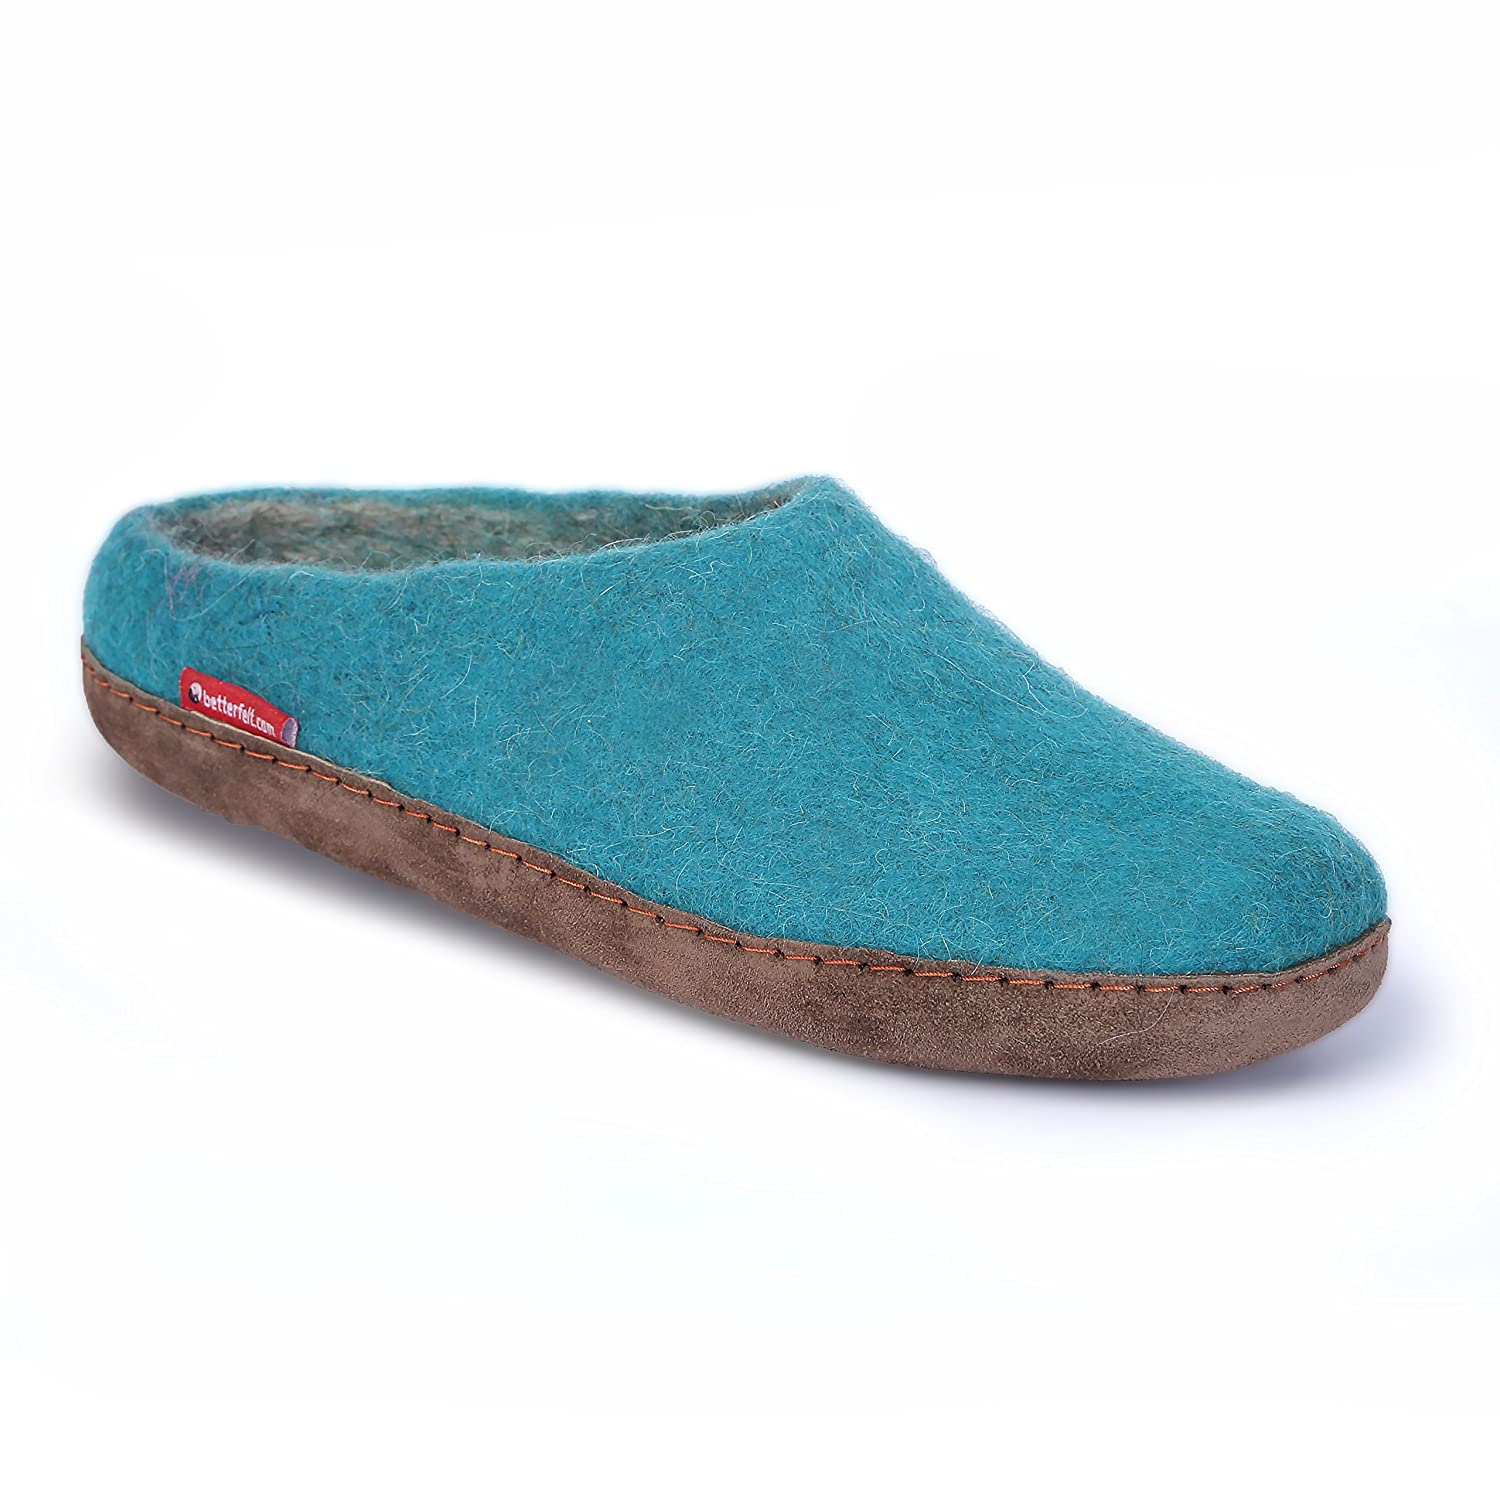 betterfelt Unisex Classic Woolen Slipper for Adults - All Natural Wool - Ultra Comfortable - Many Sizes and Colors B079CL1627 Adult 42 Light Blue-grey